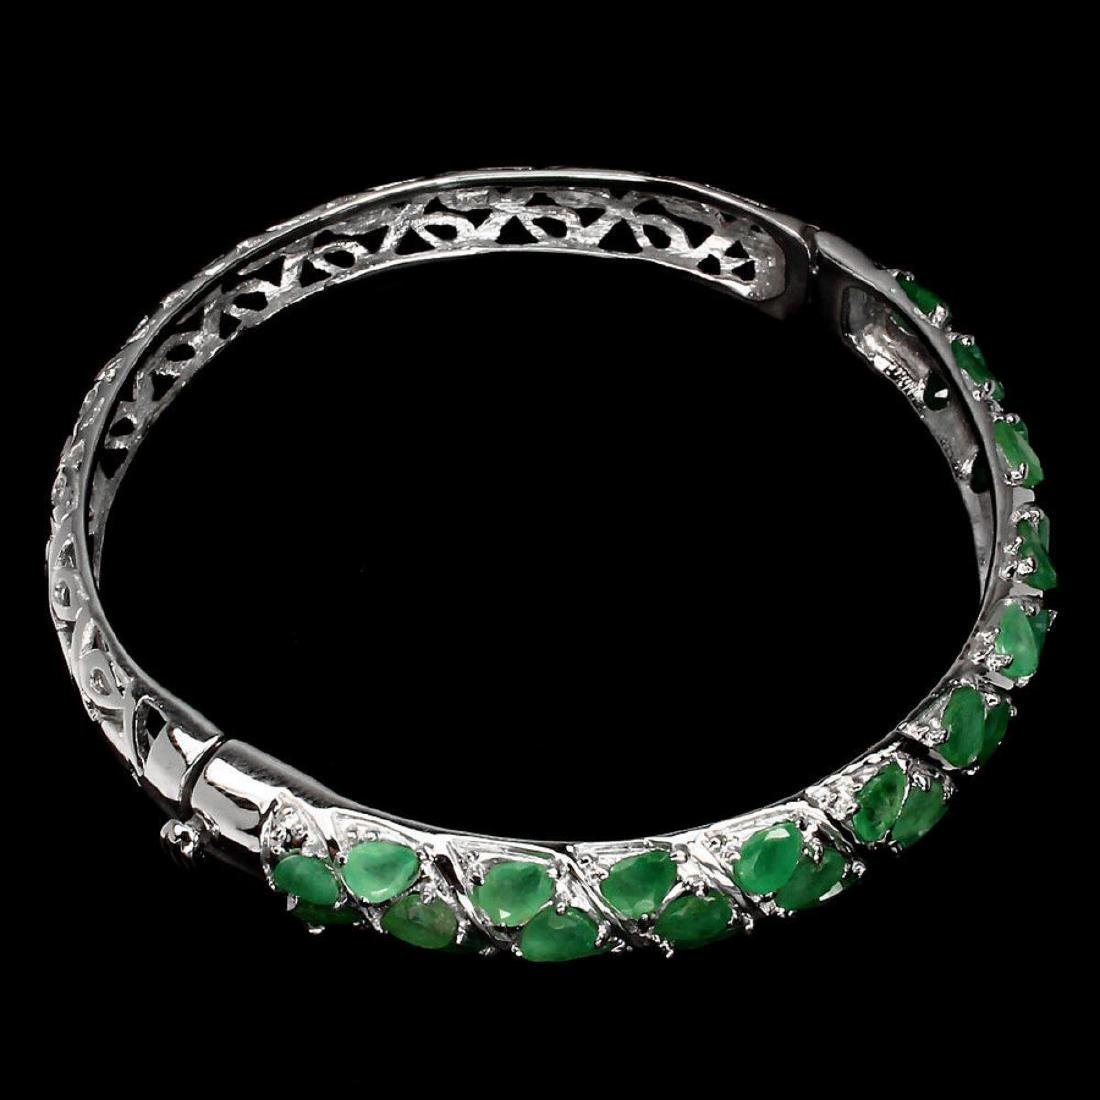 Natural Rich Green Emerald Bangle - 3